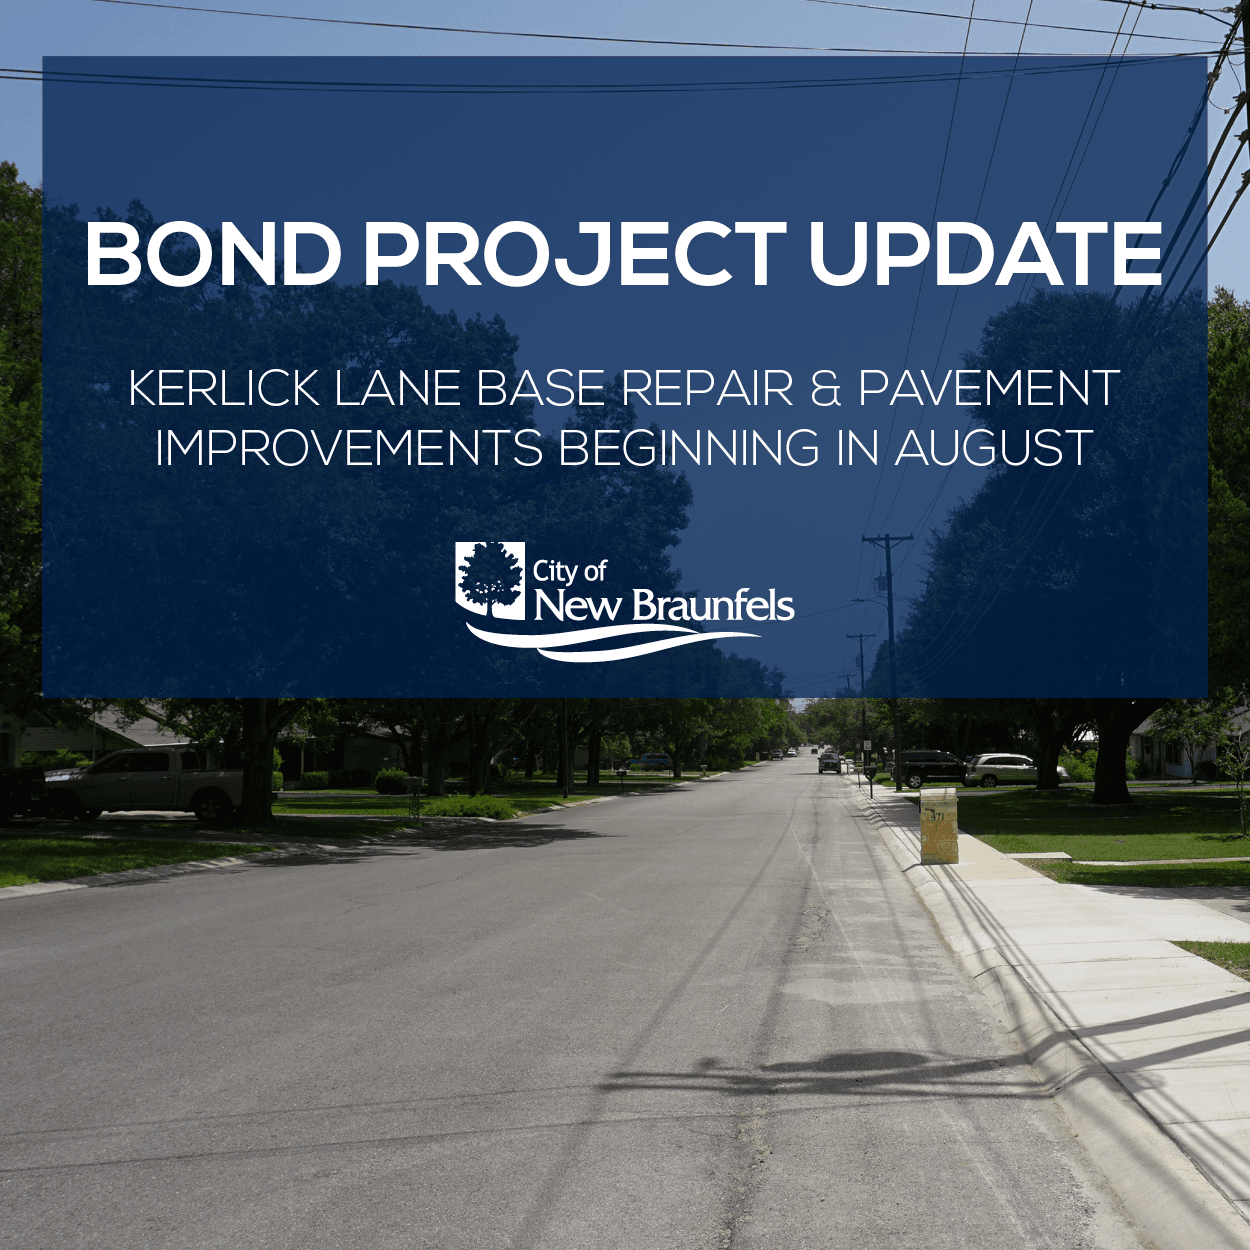 Bond Update - Kerlick